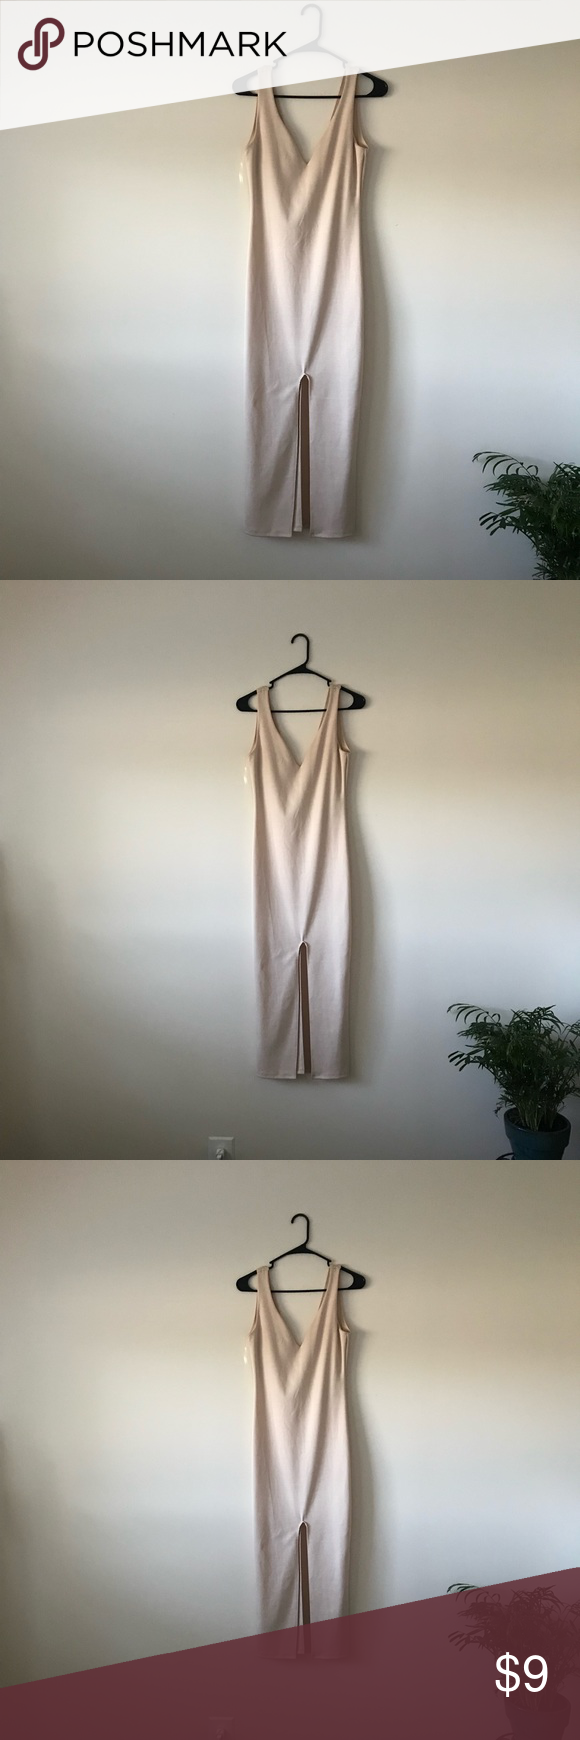 6c96744f41 Dress Brand new, never worn. Cream colored, midi pencil dress with split in  the middle from Go Jane. NEVER WORN. Cotton Material.